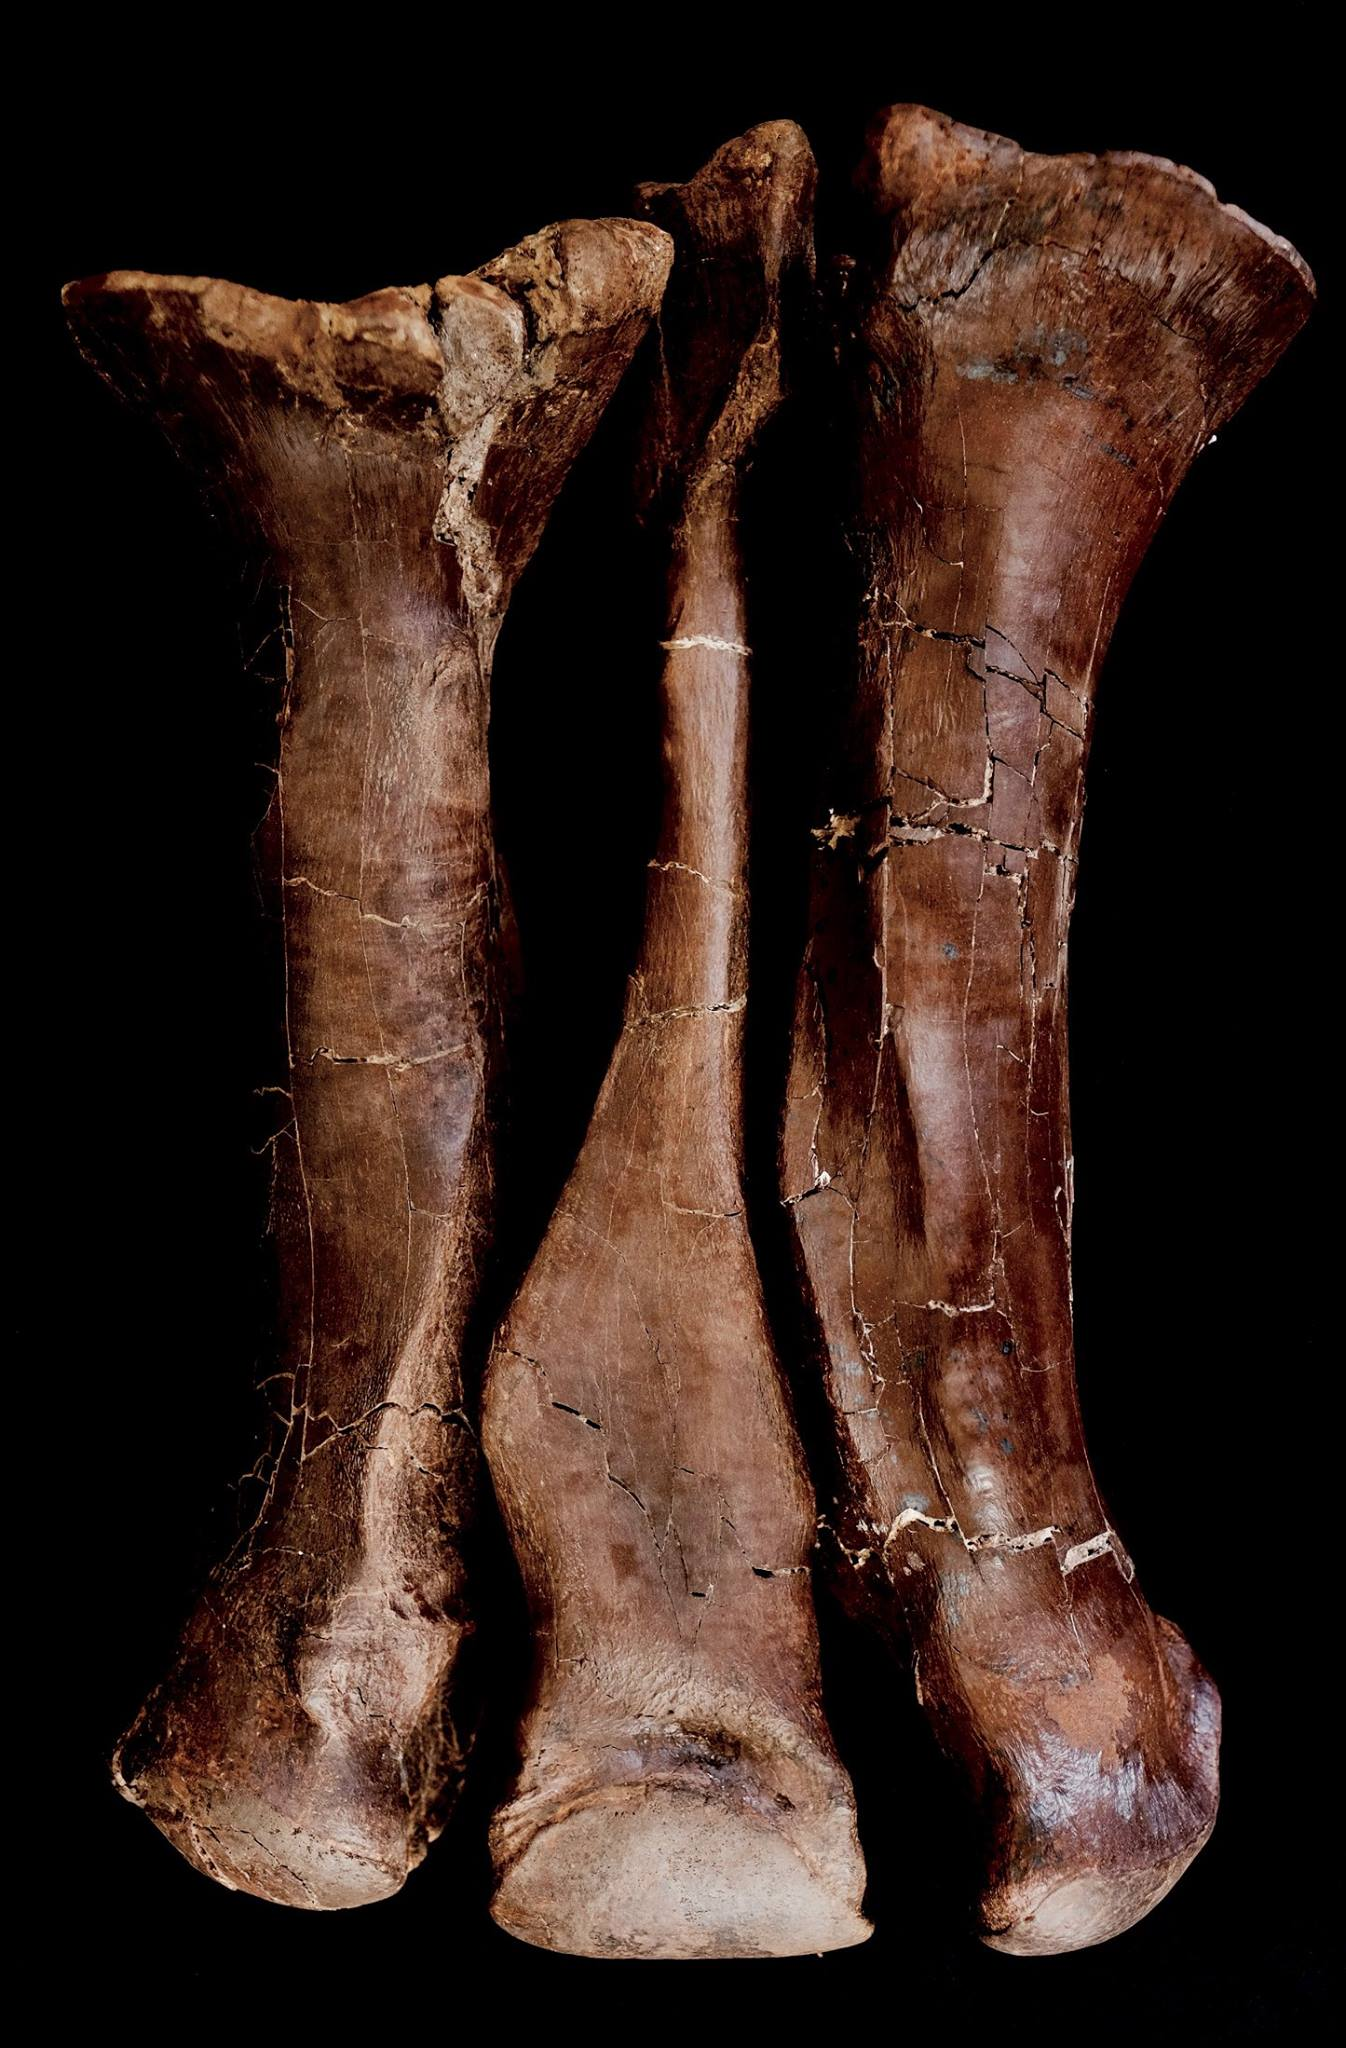 Tyrannosaurus rex - metatarsals  These are the three metatarsals from Victoria's left leg. There is evidence that she may have suffered a tendon avulsion, which would have made walking or running very painful.    (approx. 65 million years old)